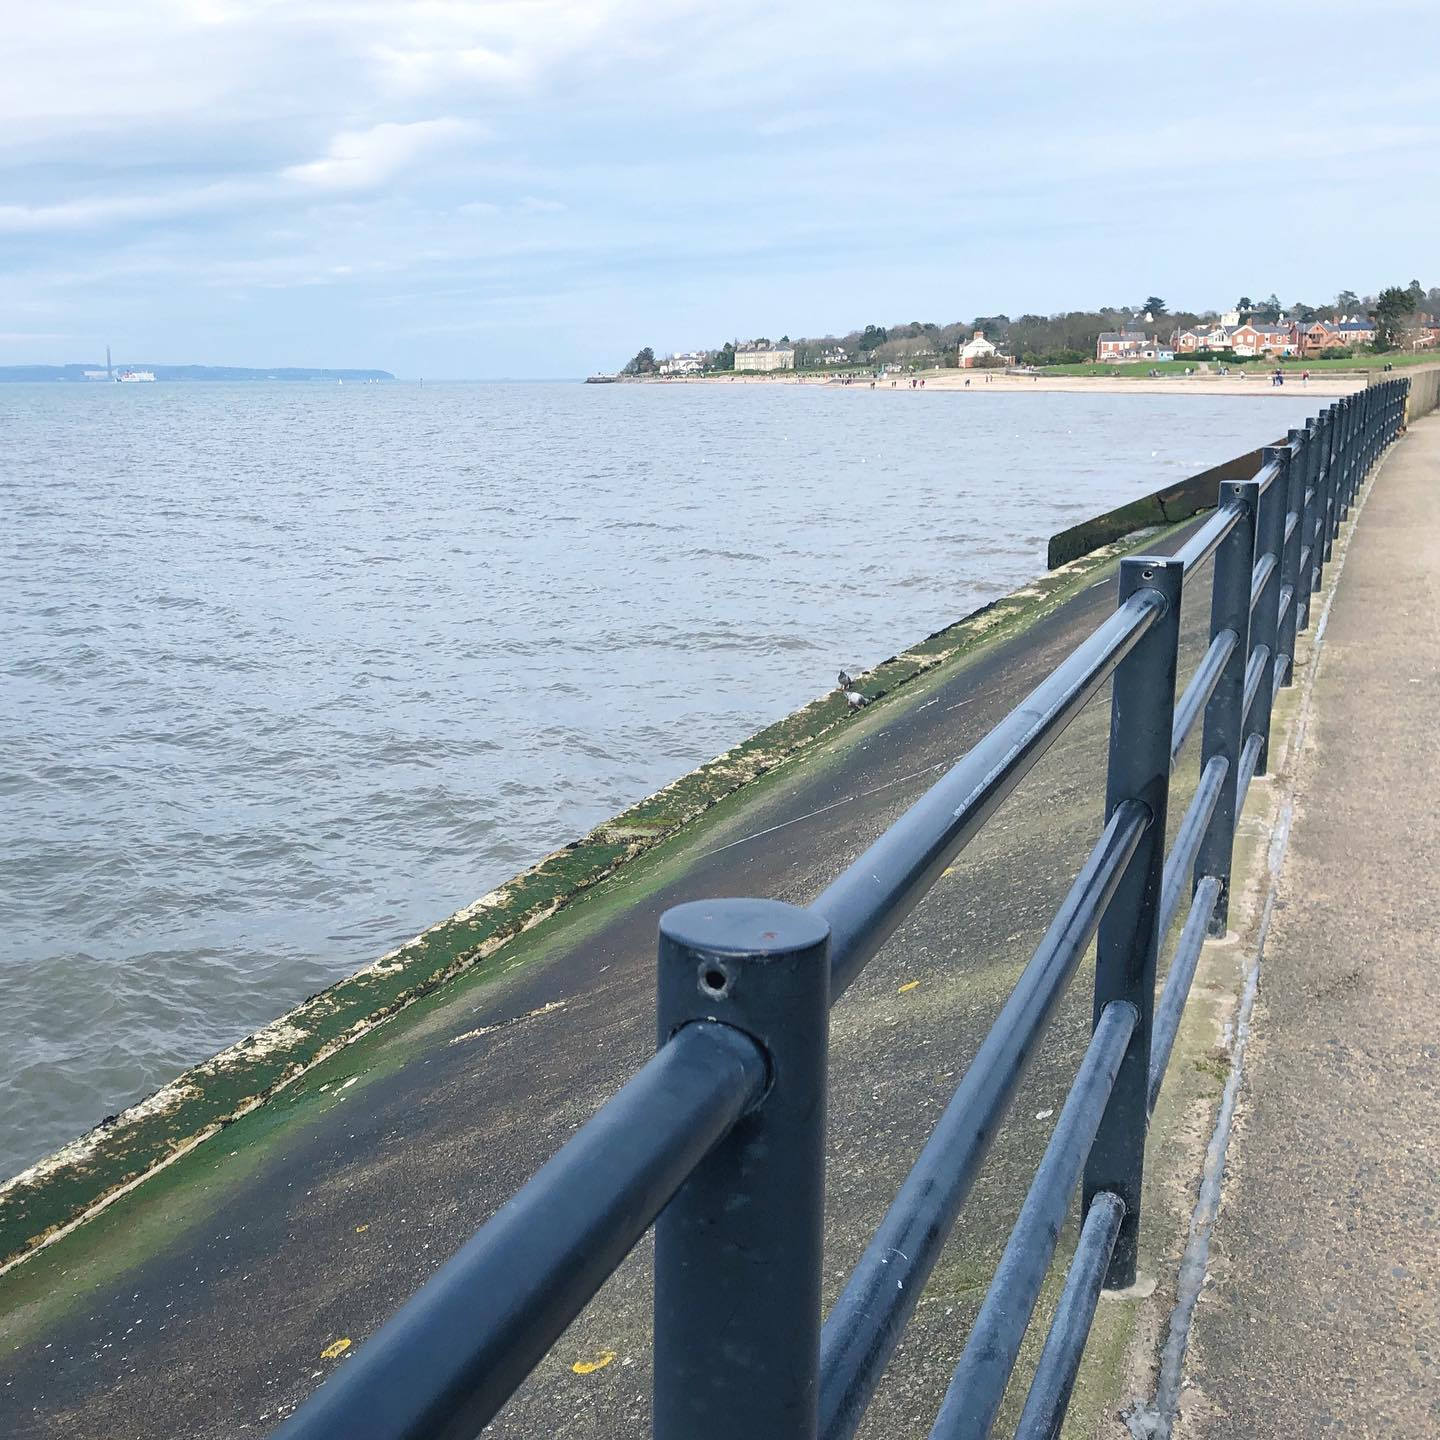 A Sunday stroll by the sea in Holywood today..... missing the north coast but will have to be content with this coastal fix for now . How has your Sunday been?